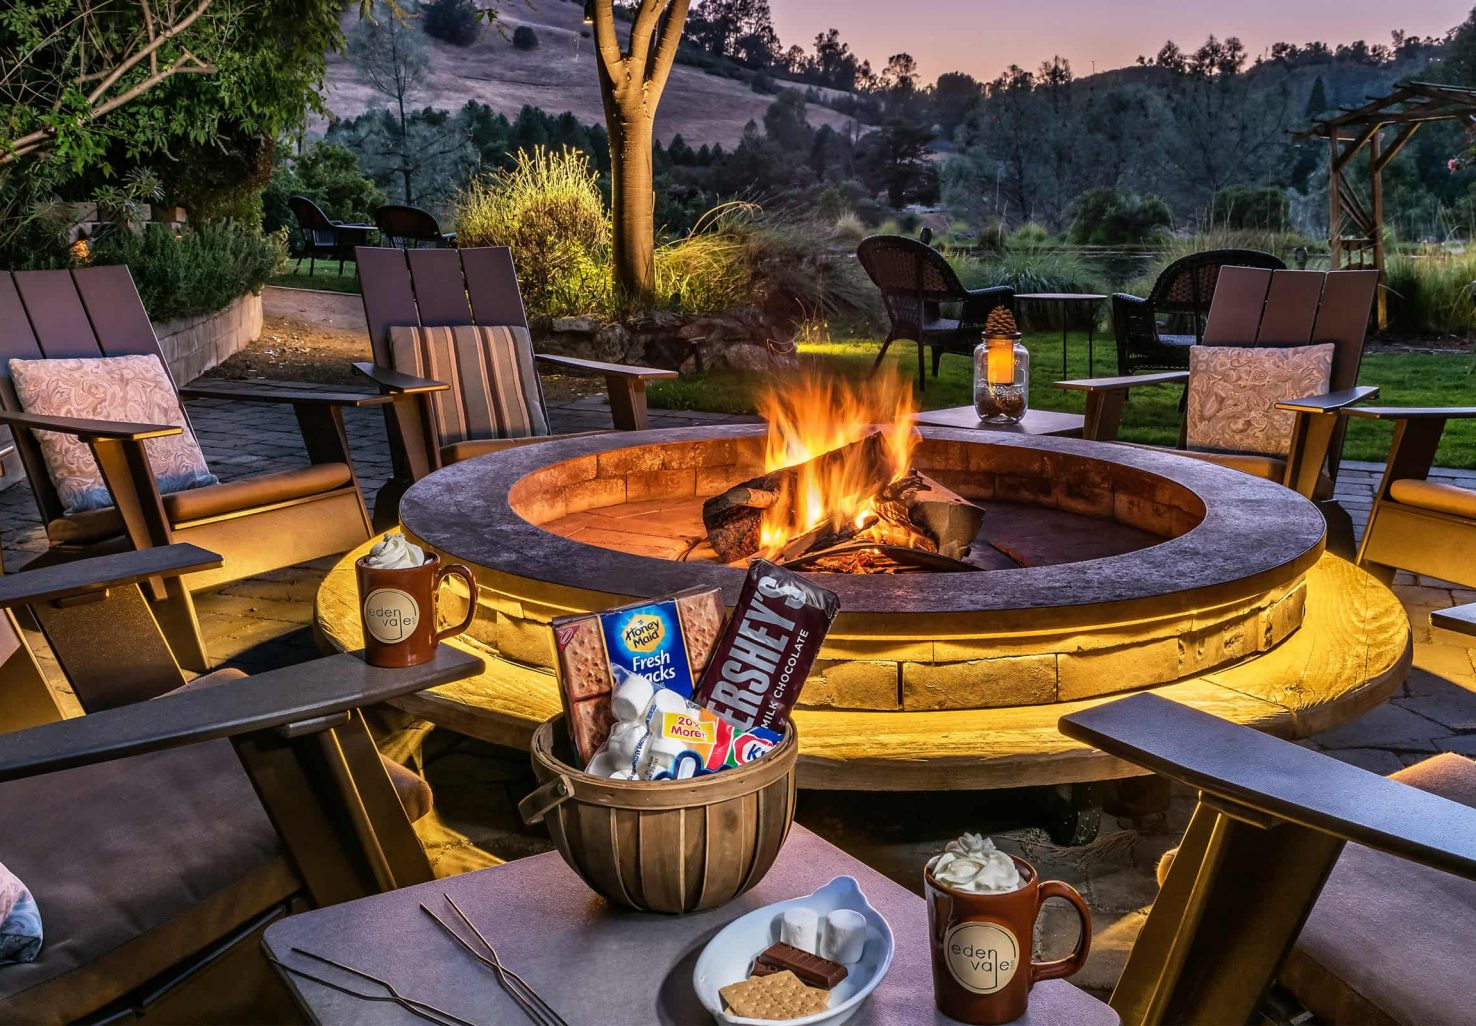 Fire pit at night with s'mores at our bed and breakfast in Northern California